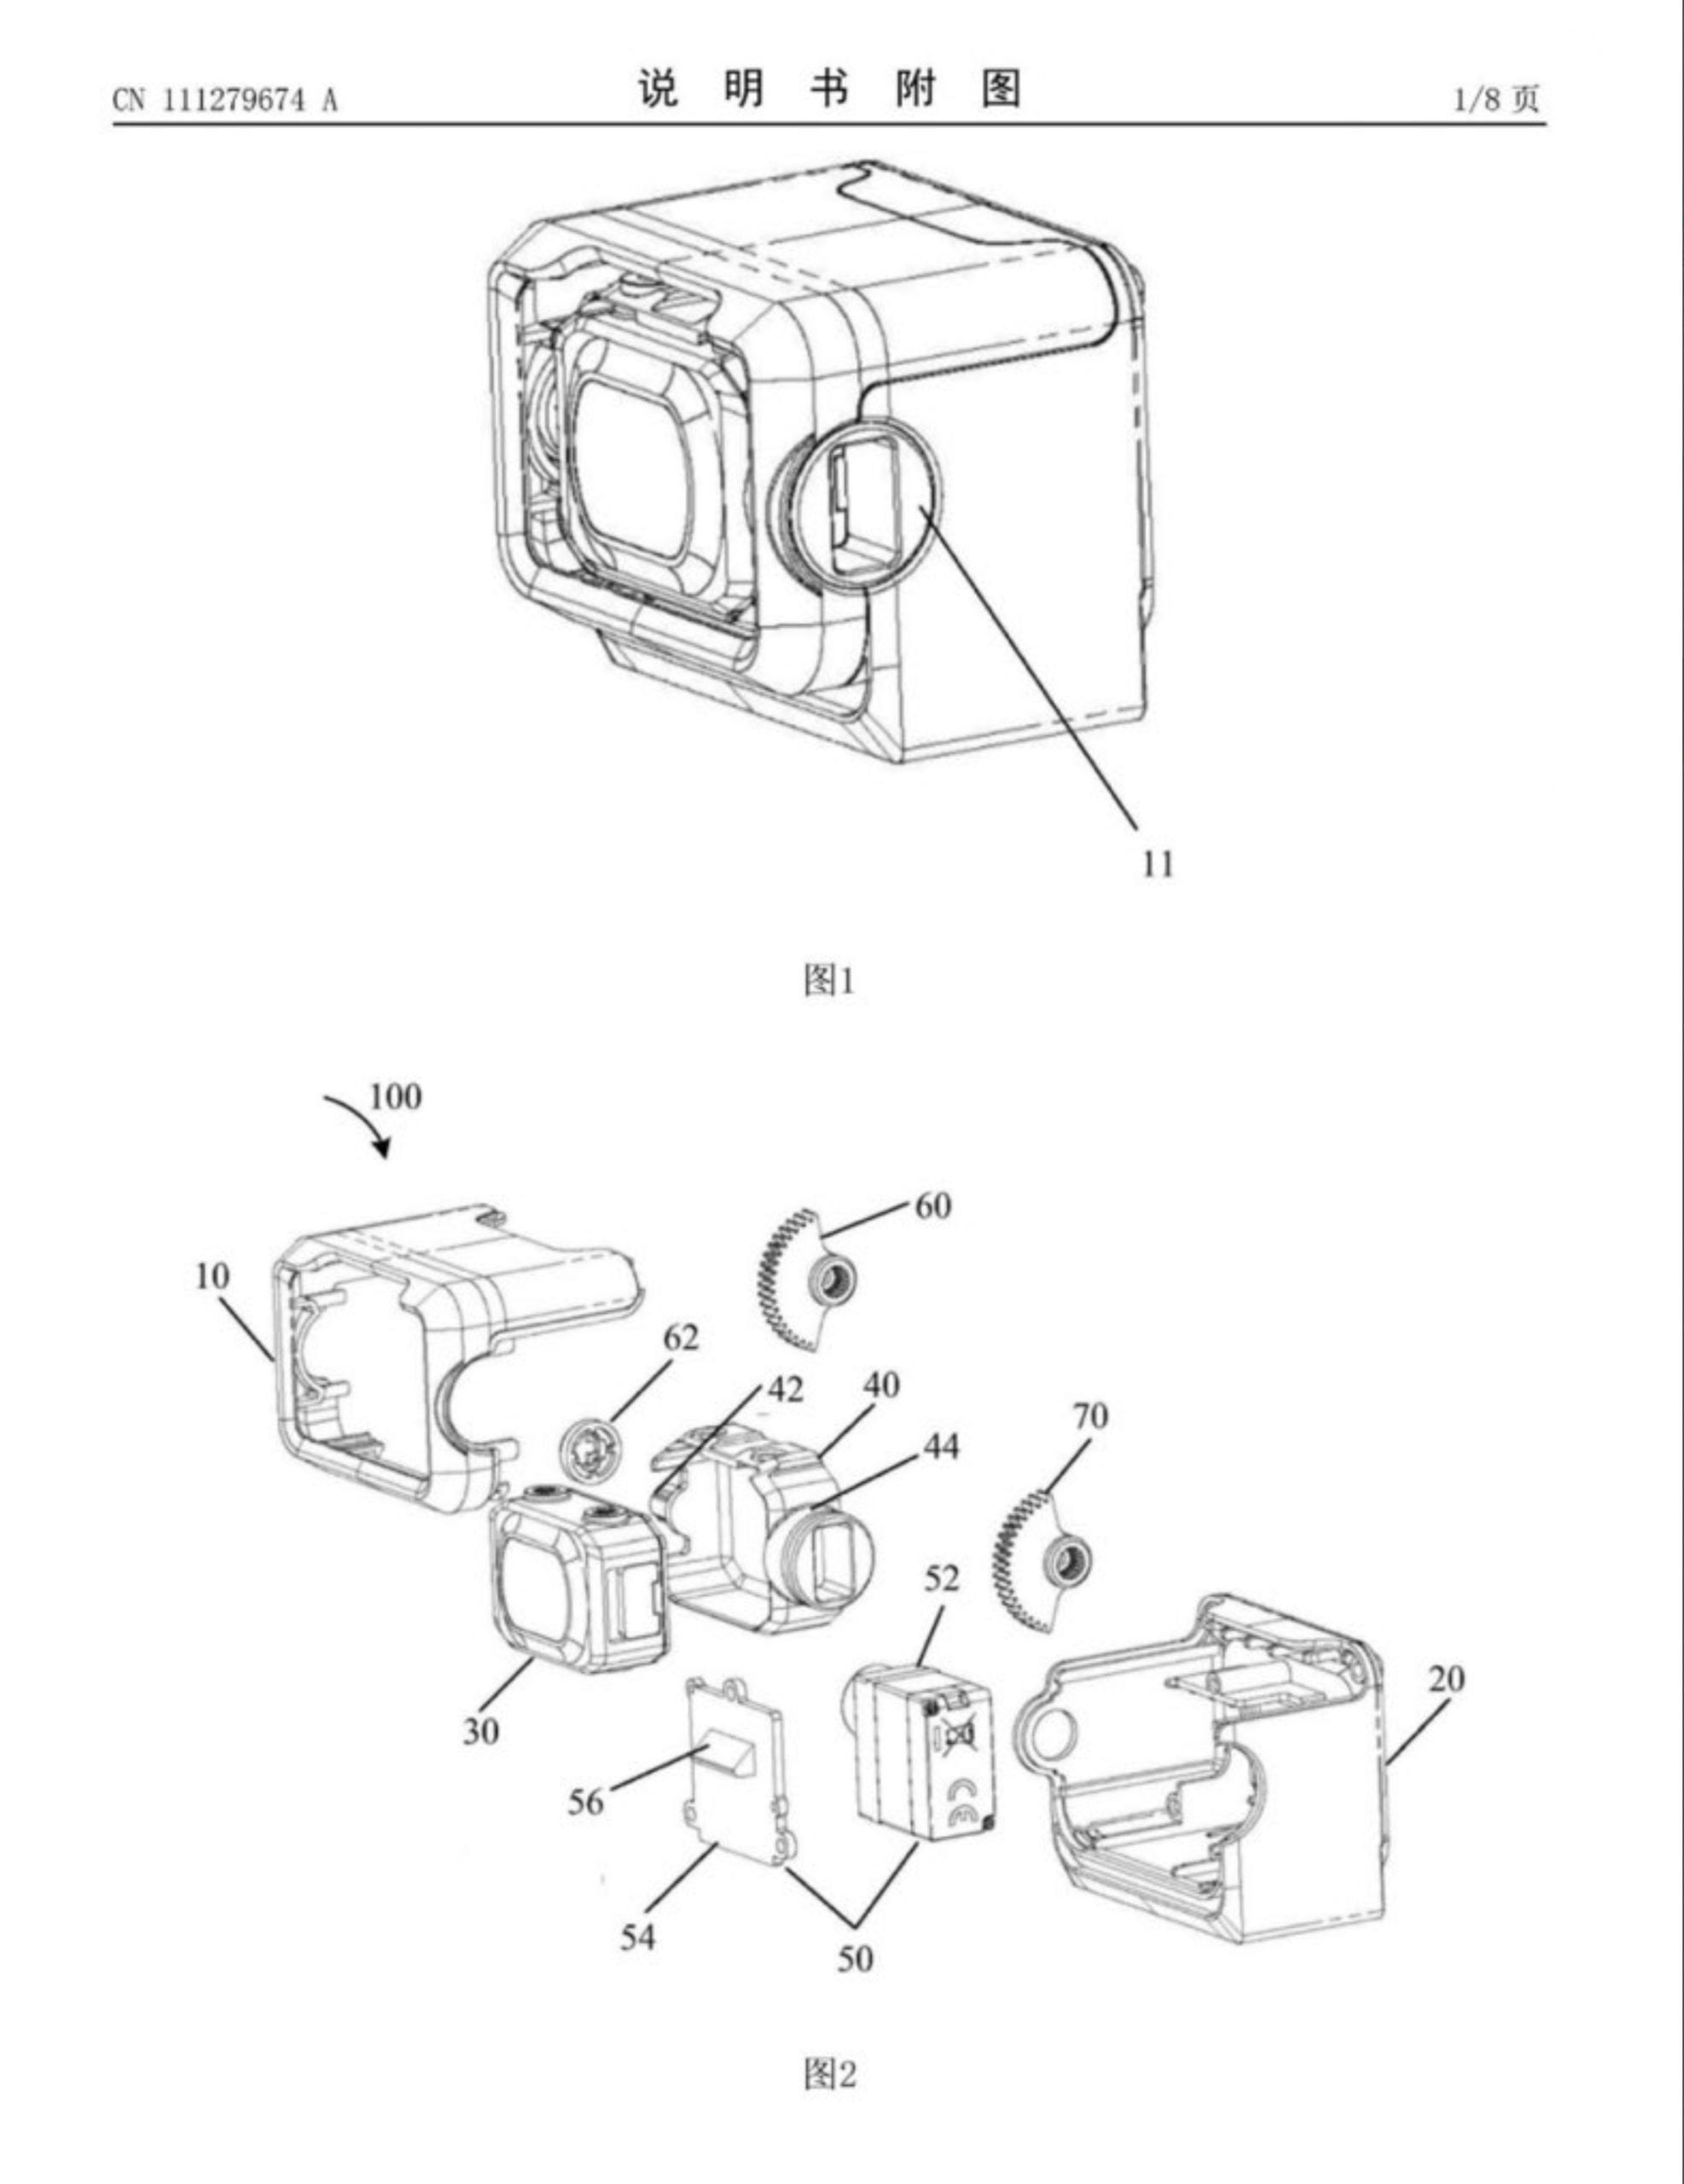 DJI FPV Camera patent drawings